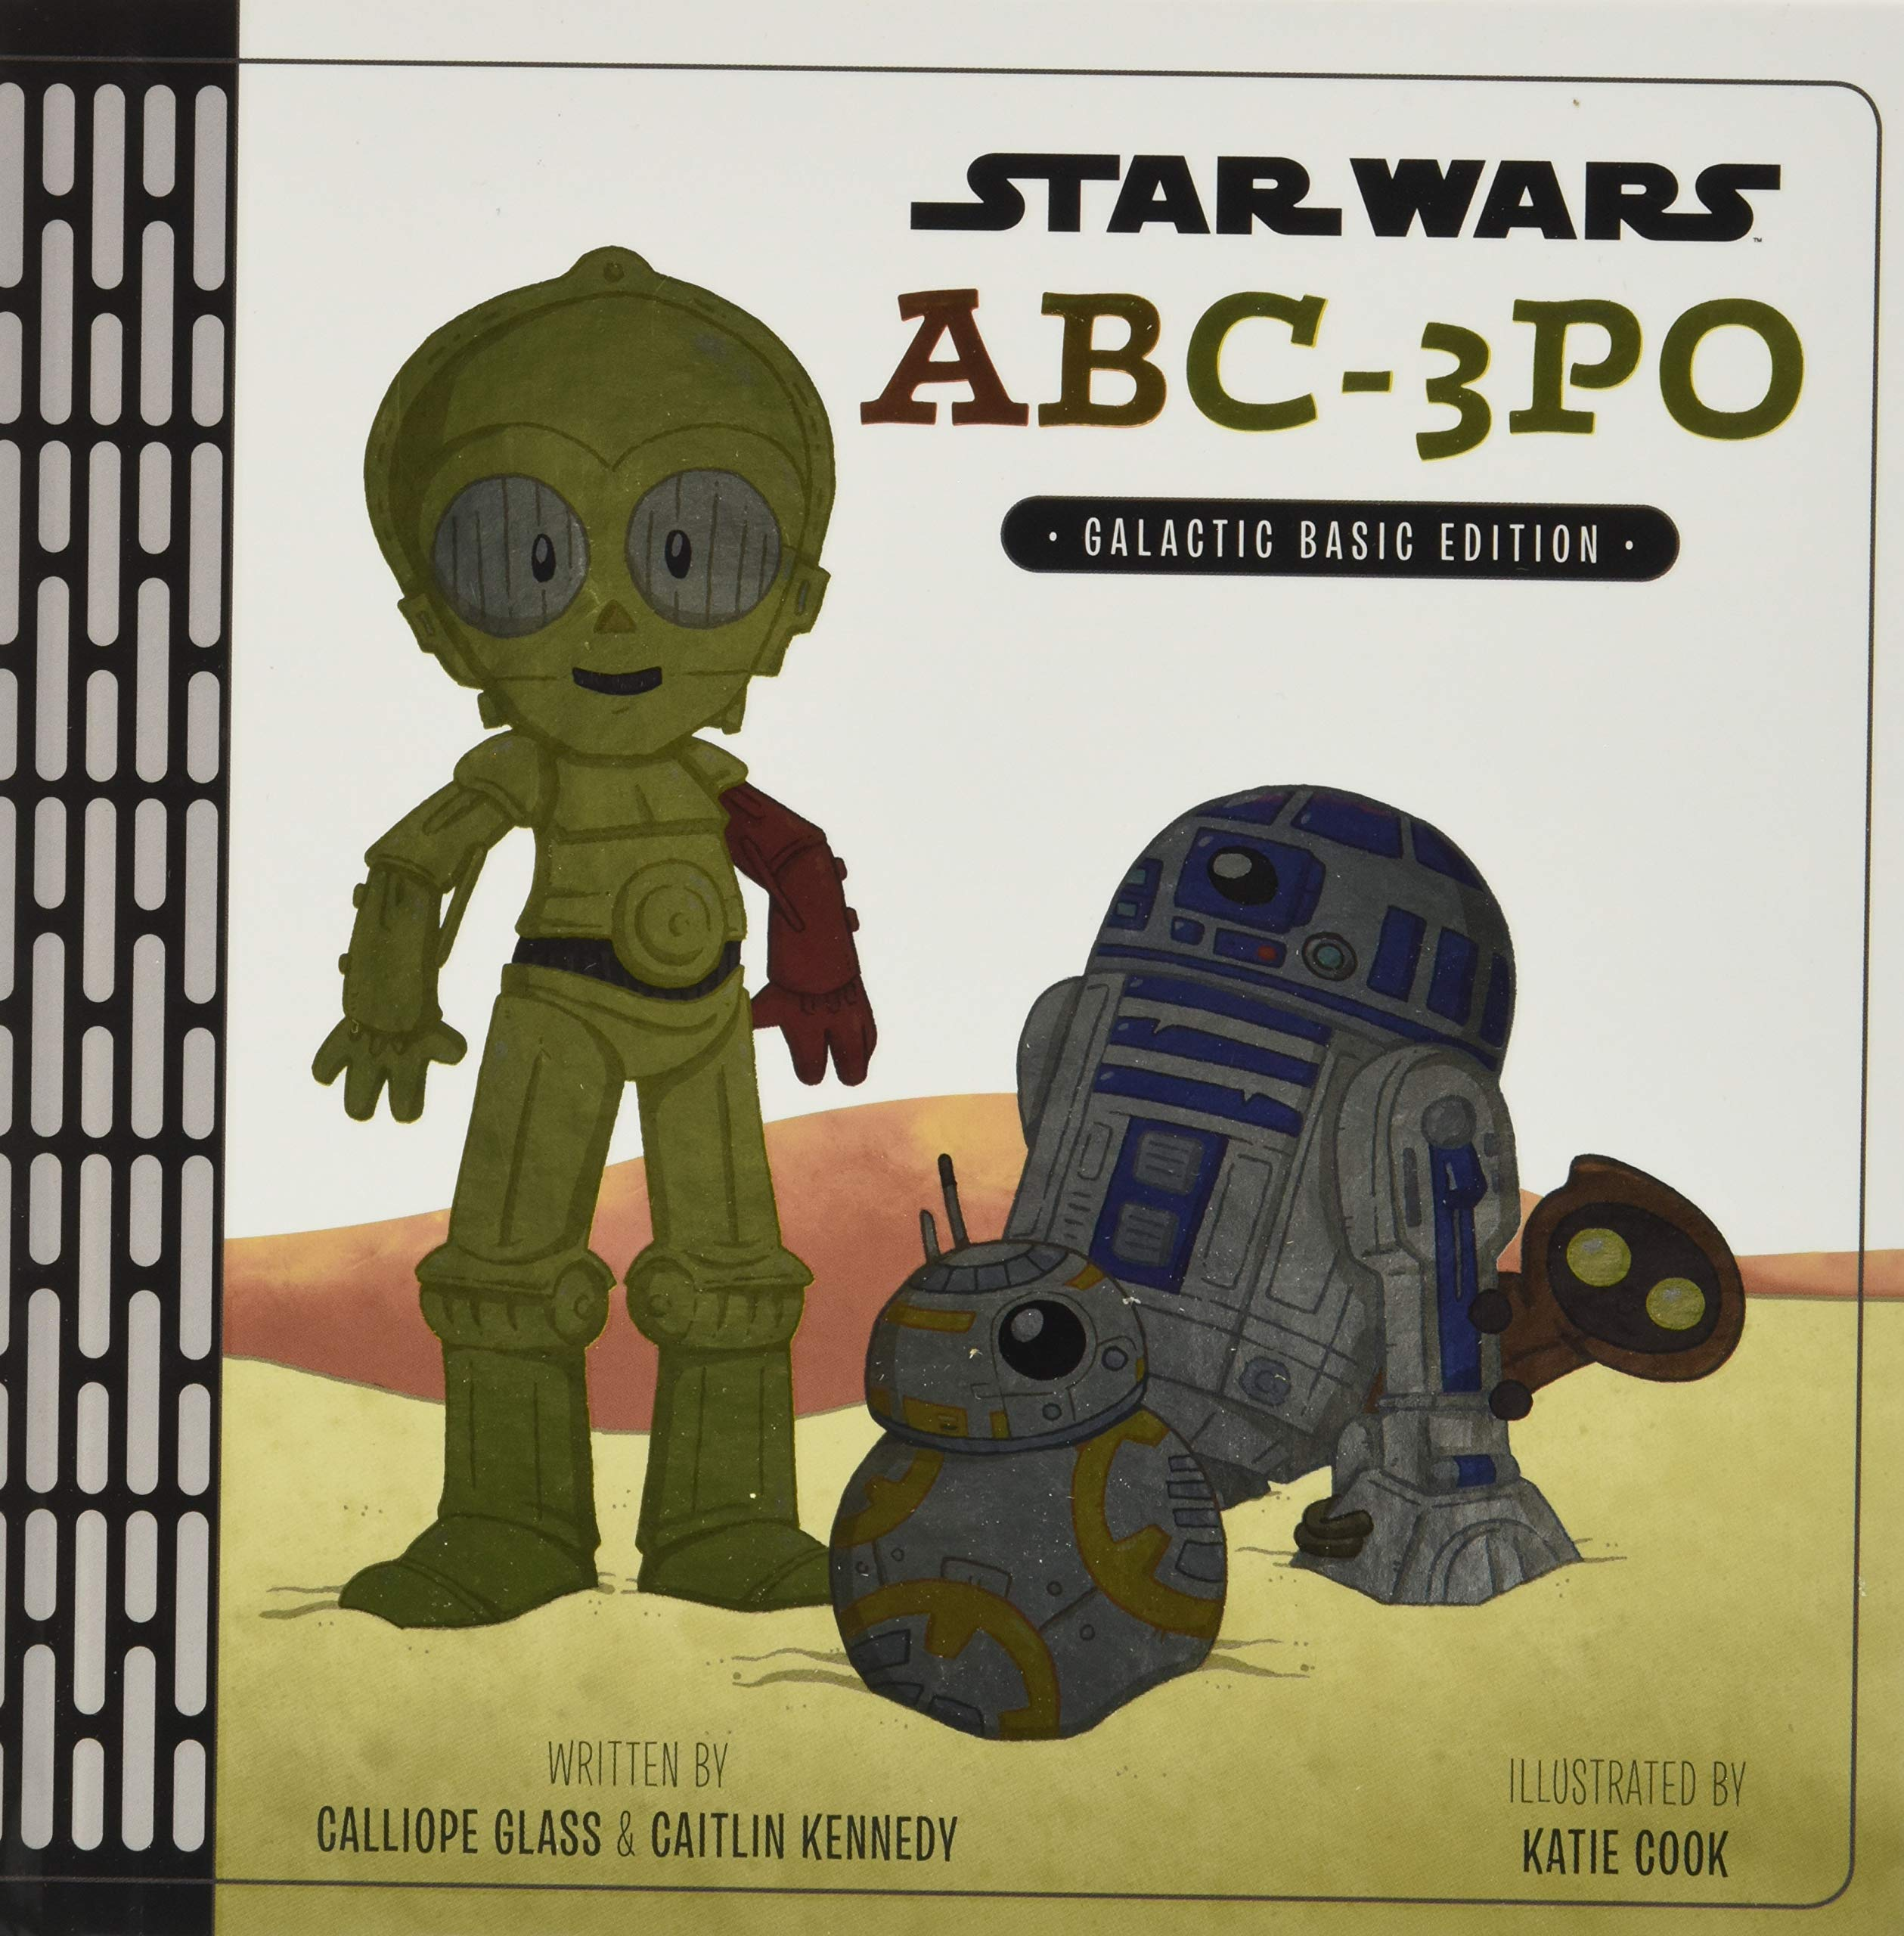 Star Wars: ABC-3PO (Galactic Basic Edition)